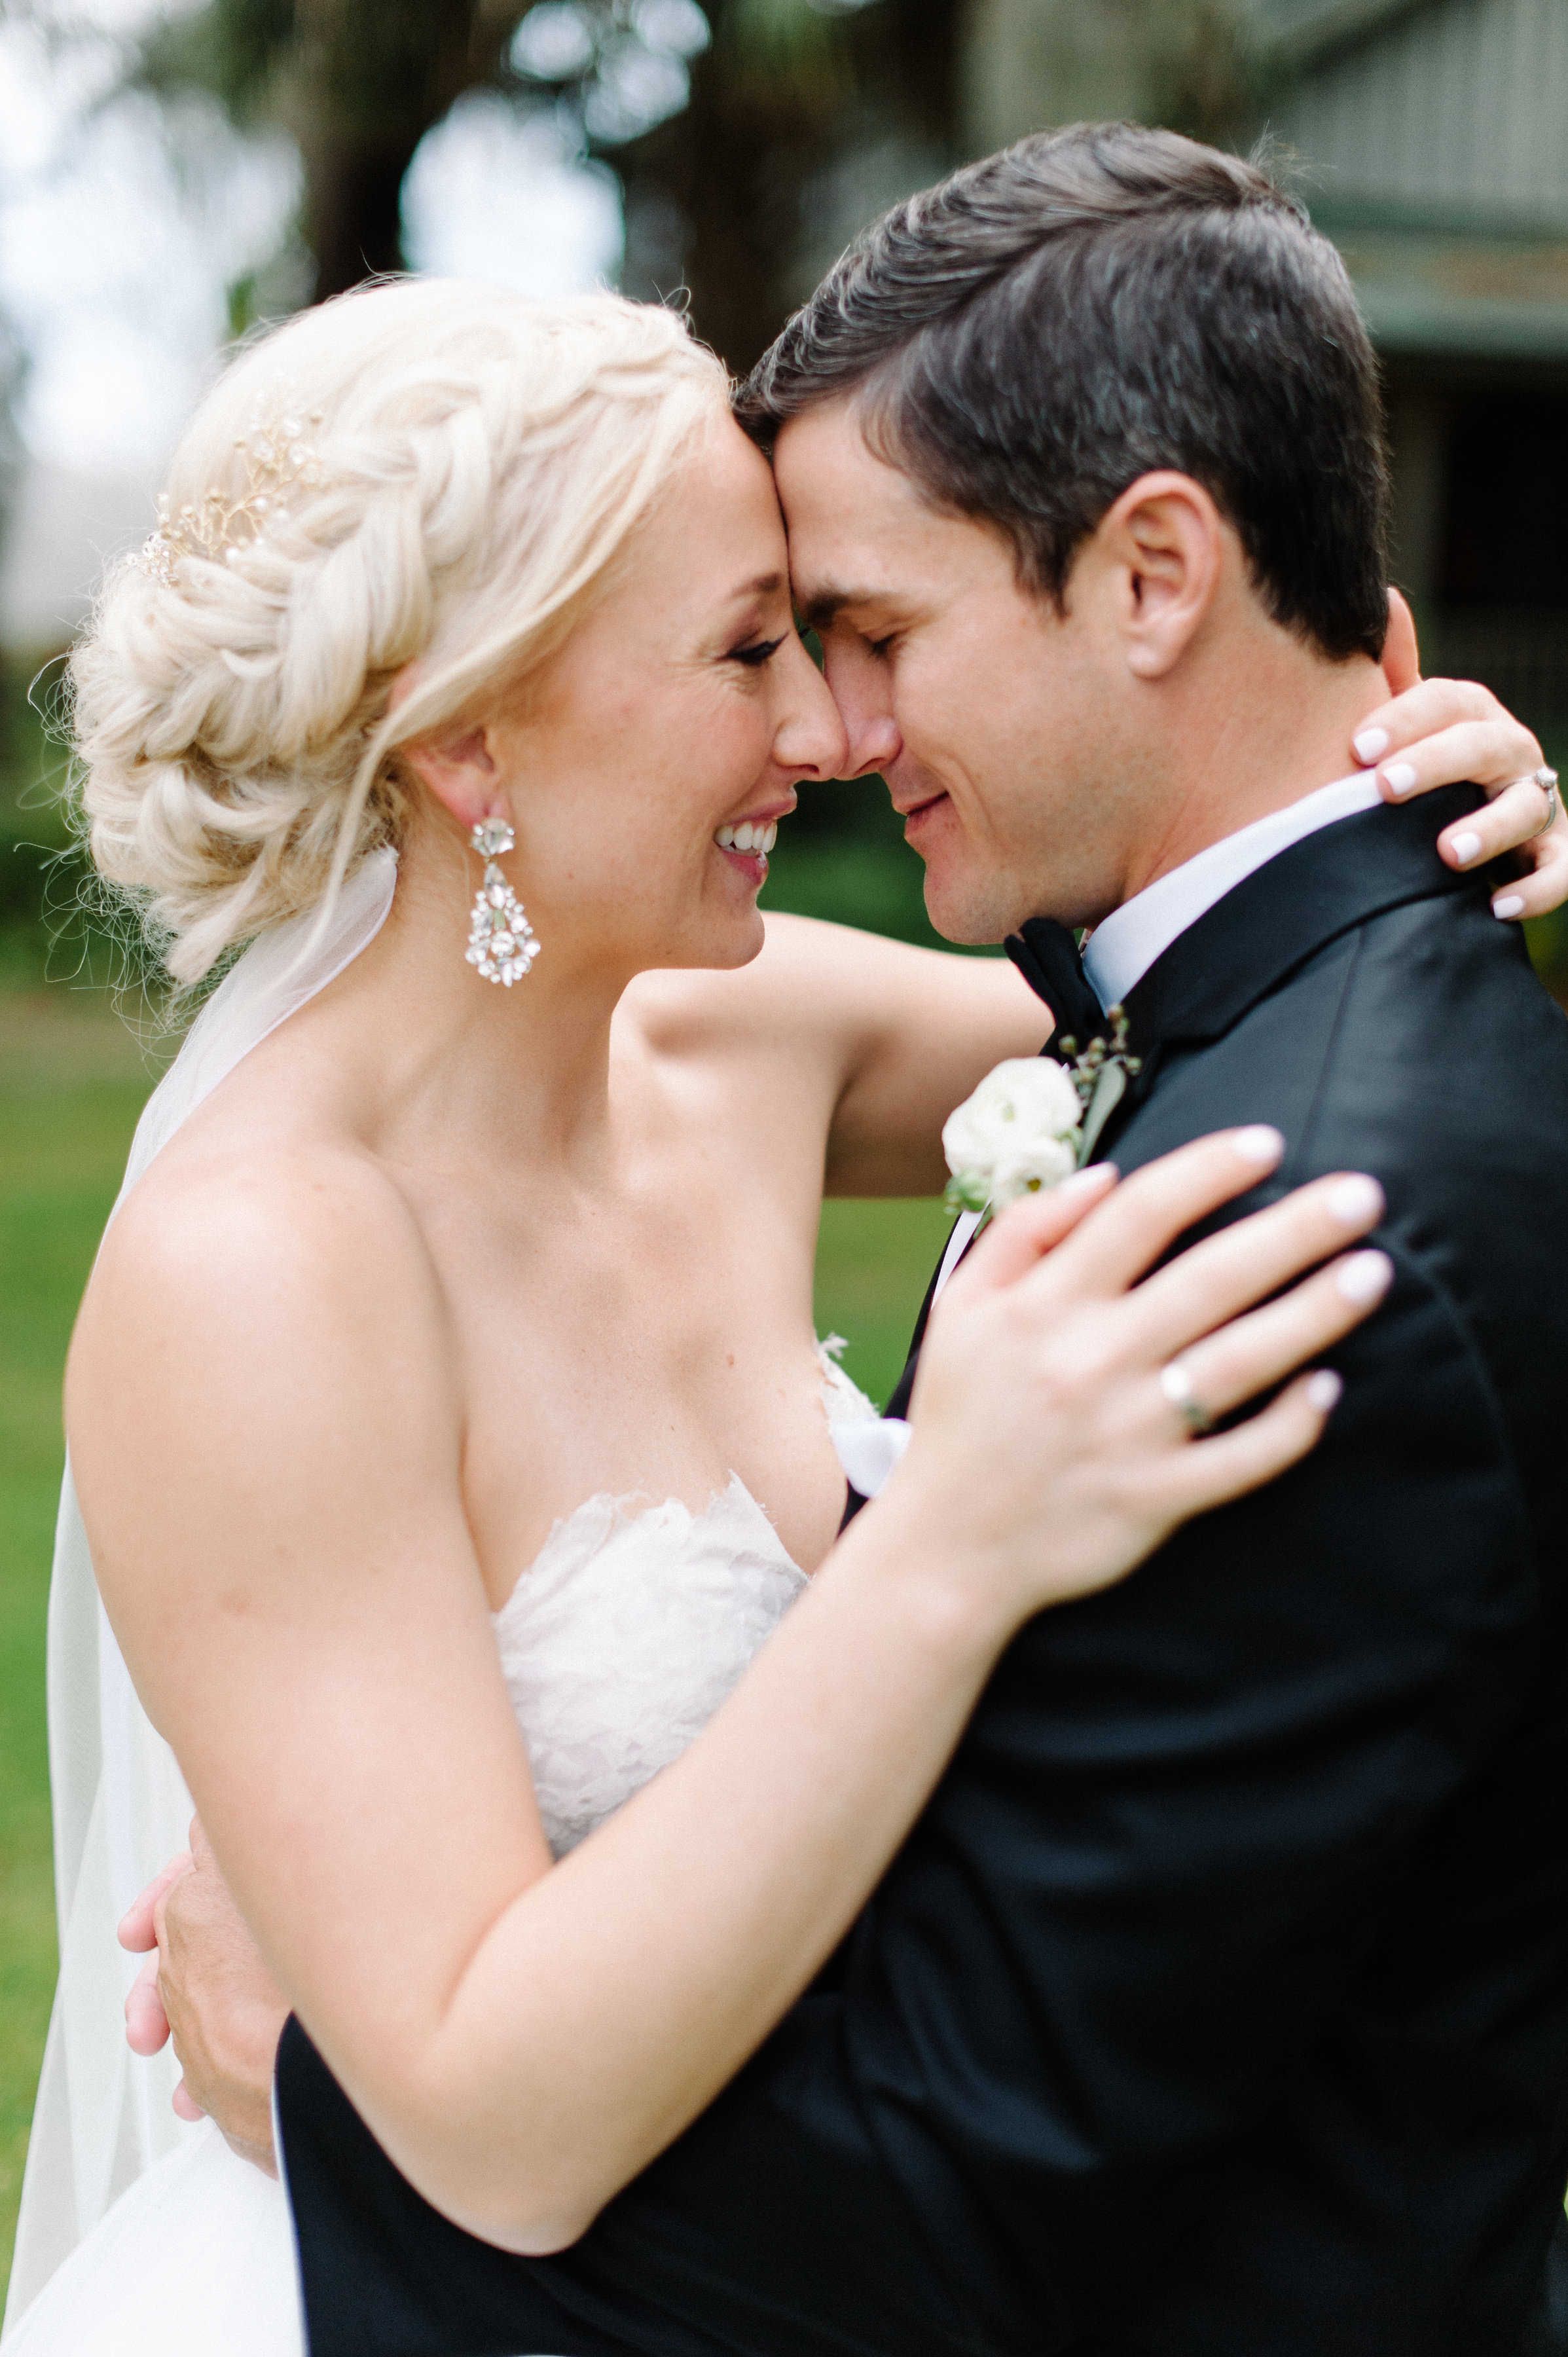 Sweet moments of married bliss